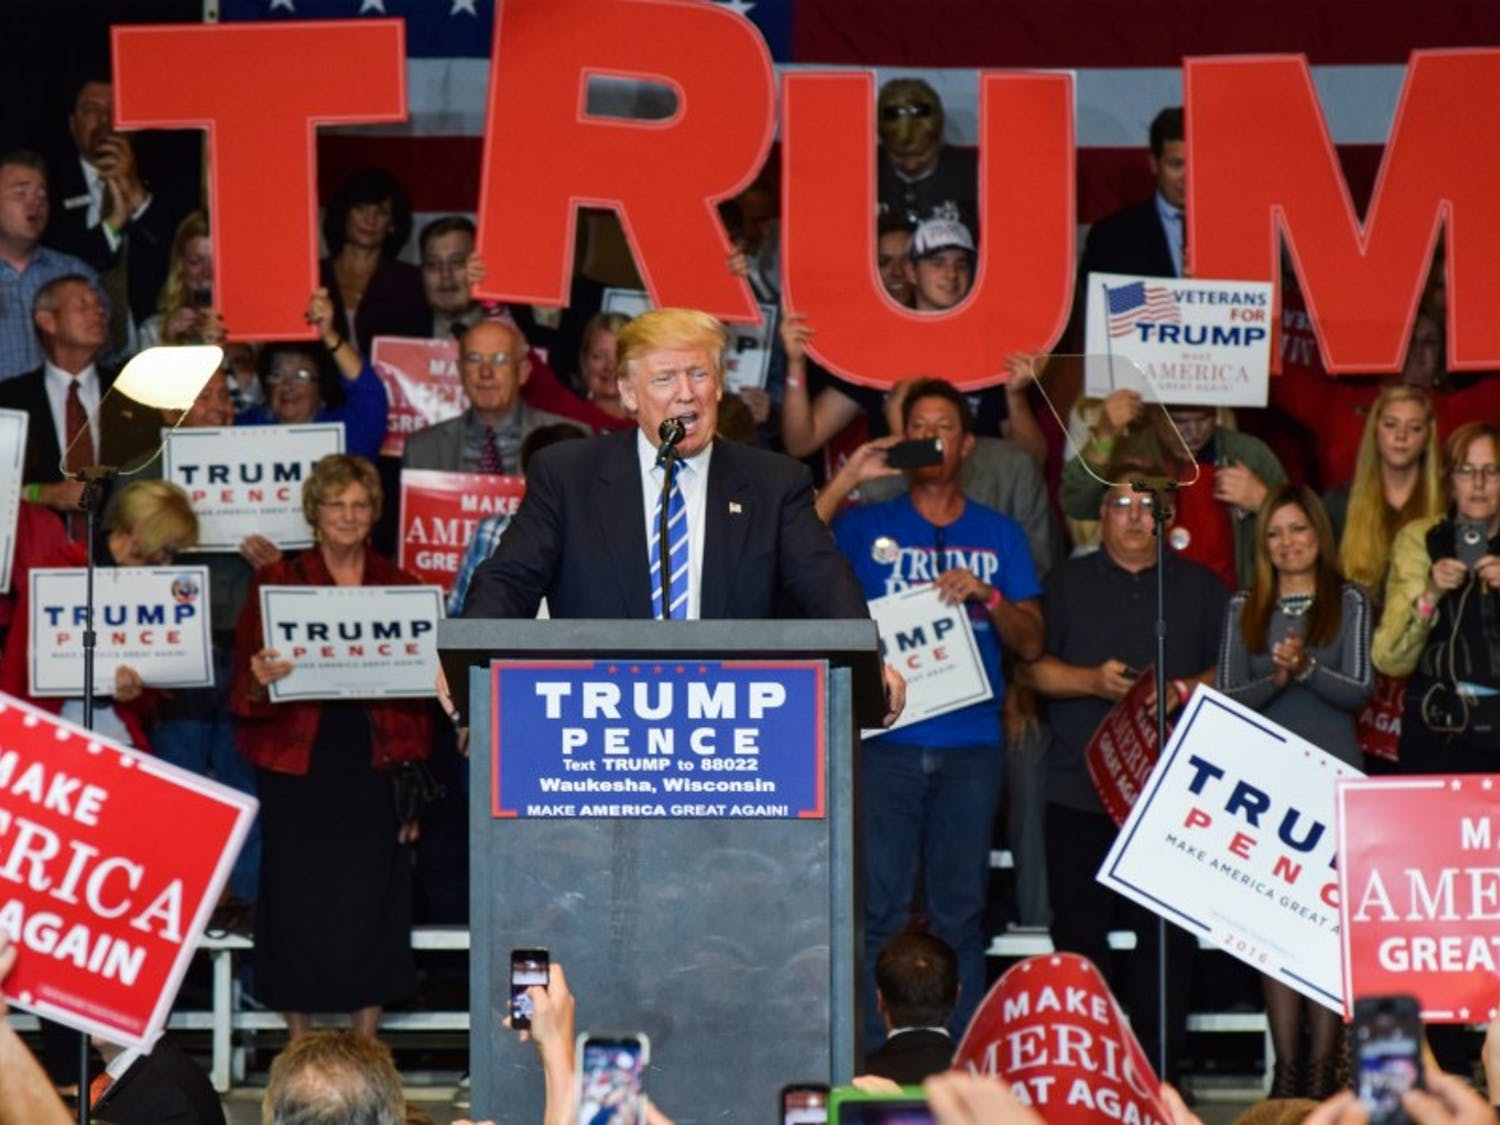 Despite countless gaffes and scandals, President Trump's most loyal supporters have remained by his side.